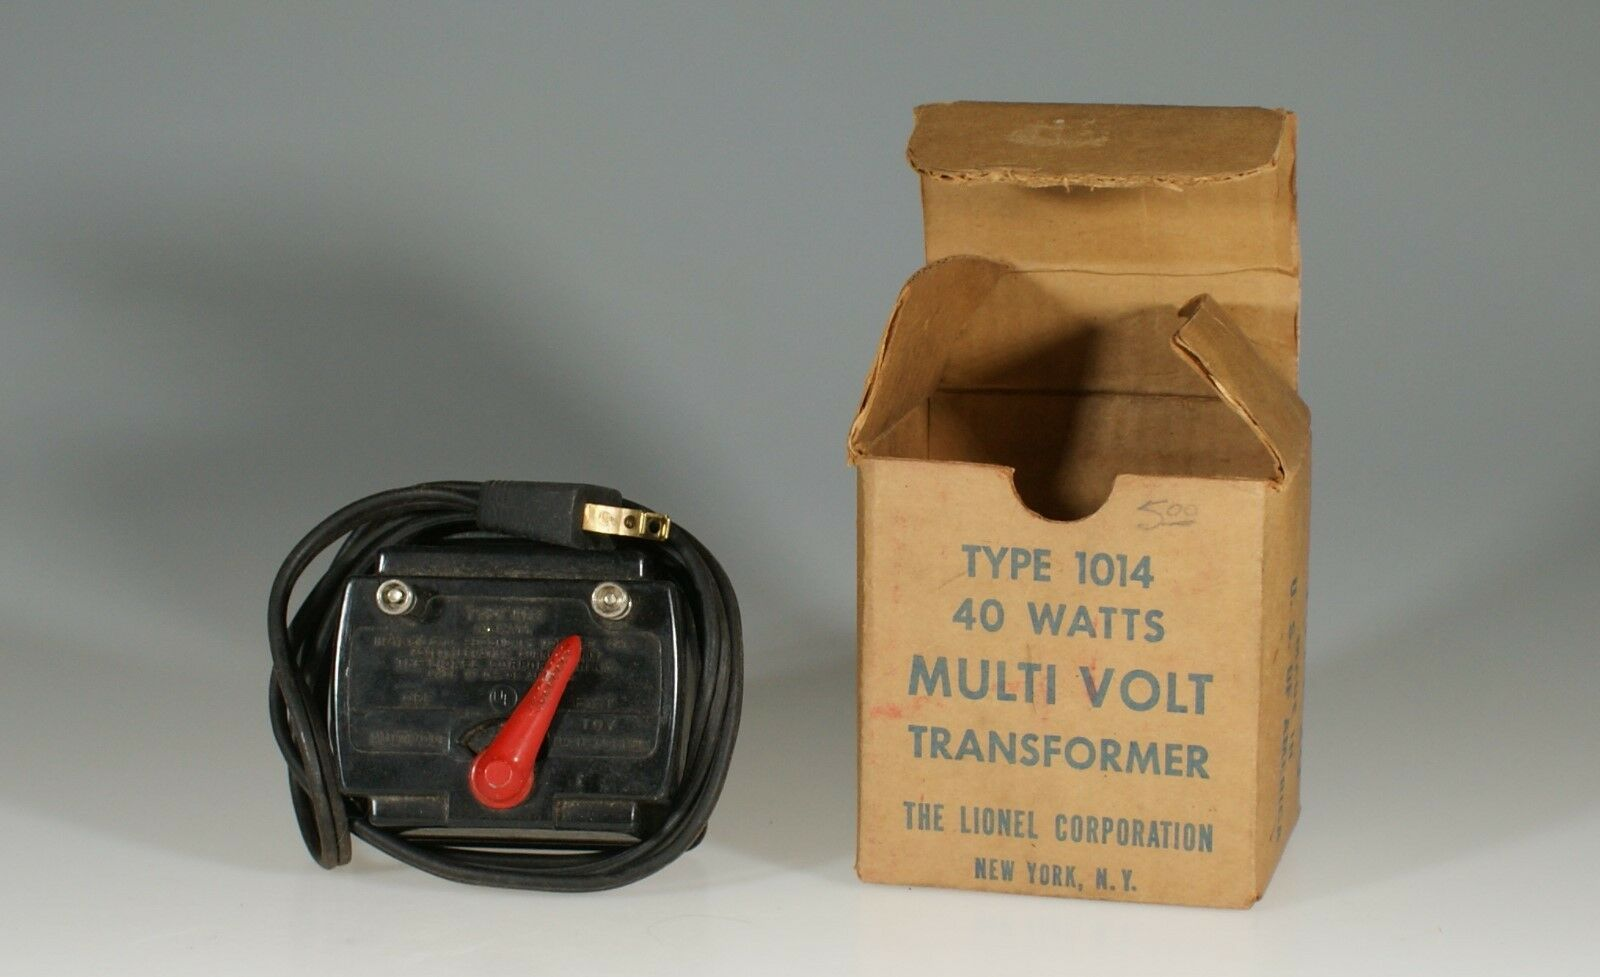 Vintage Lionel Train Type 1014 Multi Volt Transformer (Boxed), Made in U.S.A.